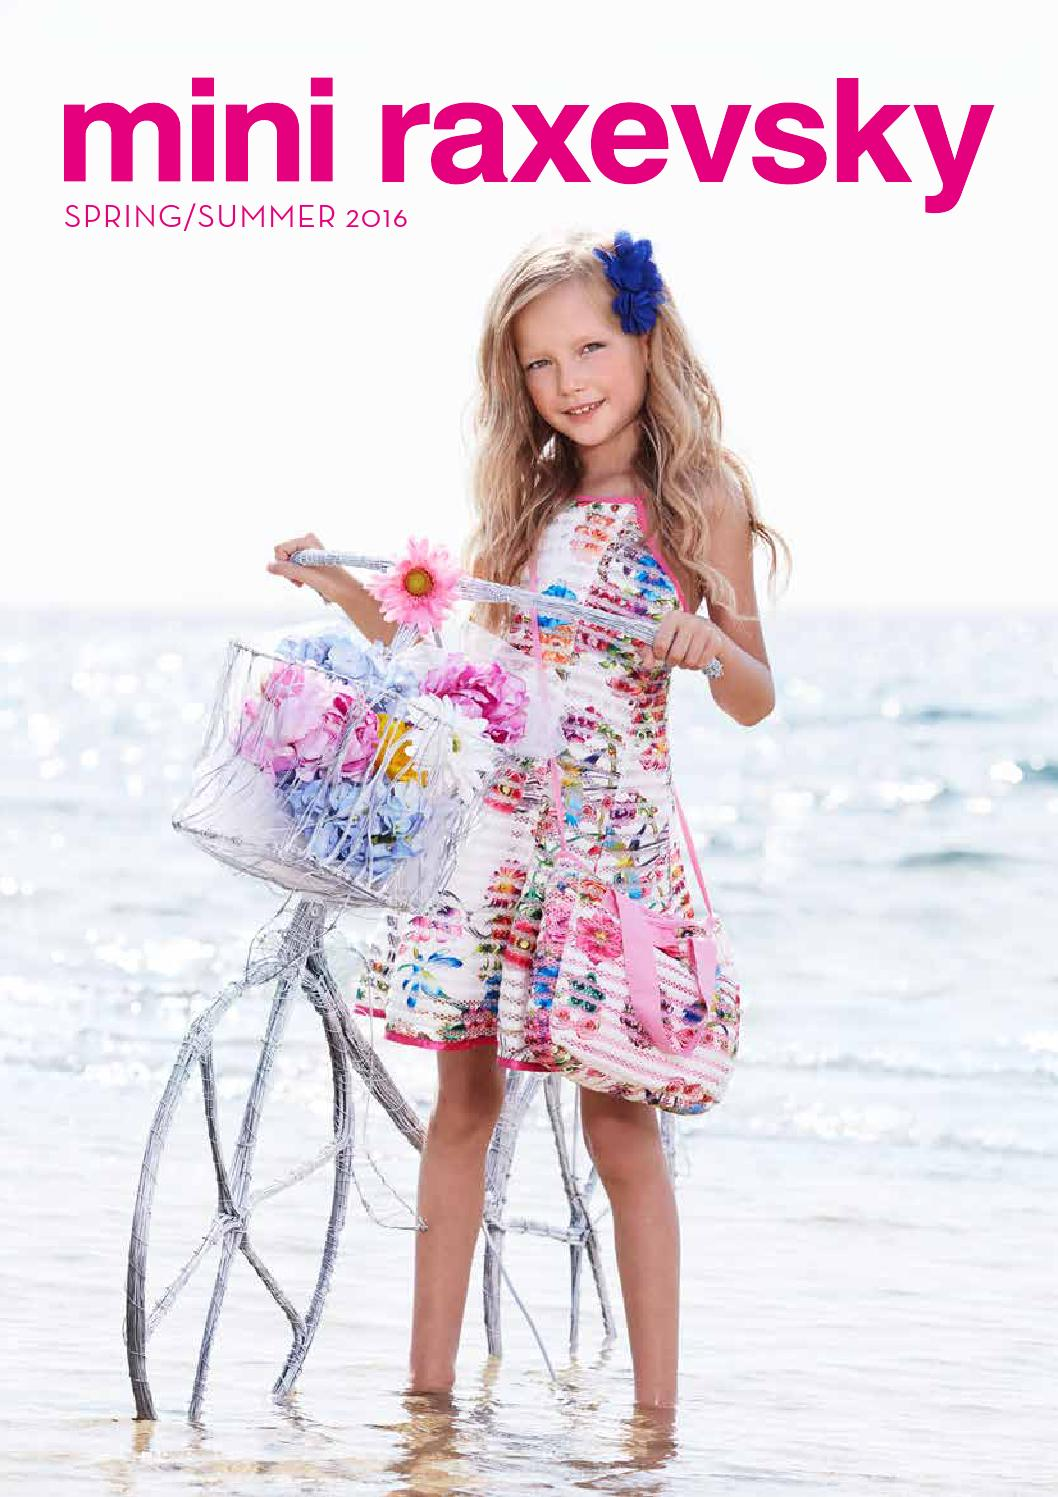 Mini raxevsky collection spring summer 2016 by mini for Mini boden winter 2016